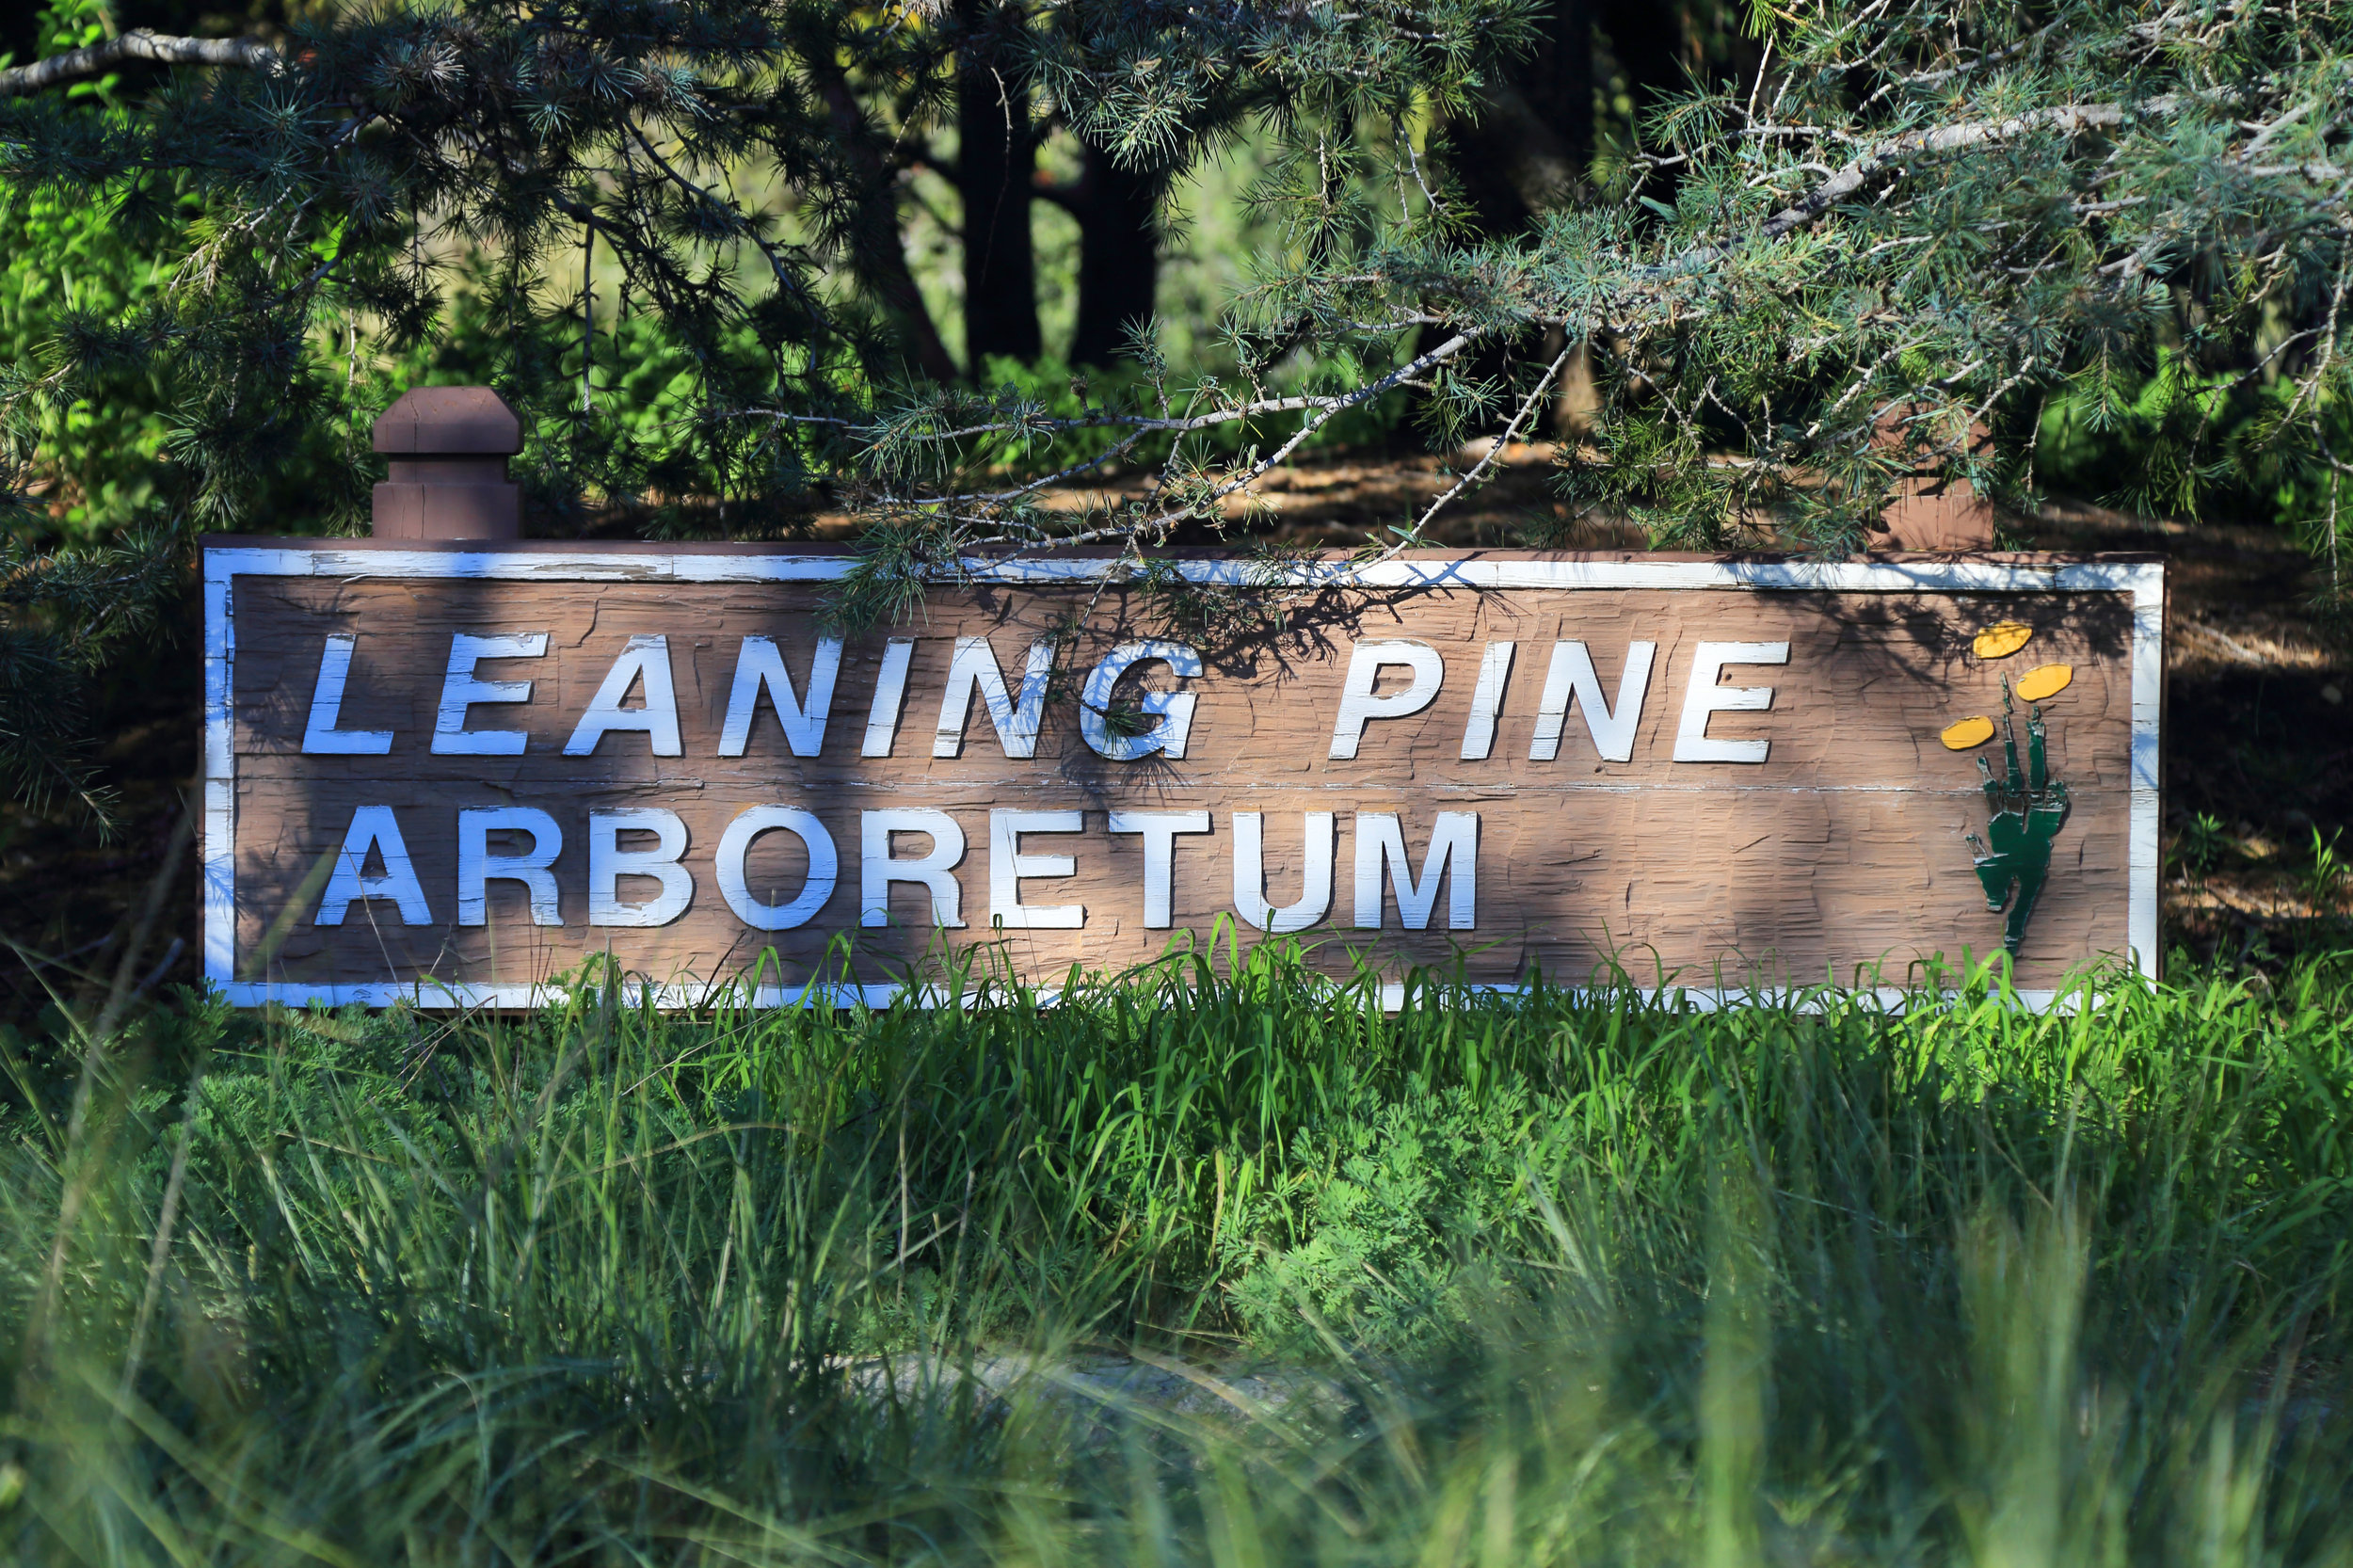 Welcome to Leaning Pine Arboretum